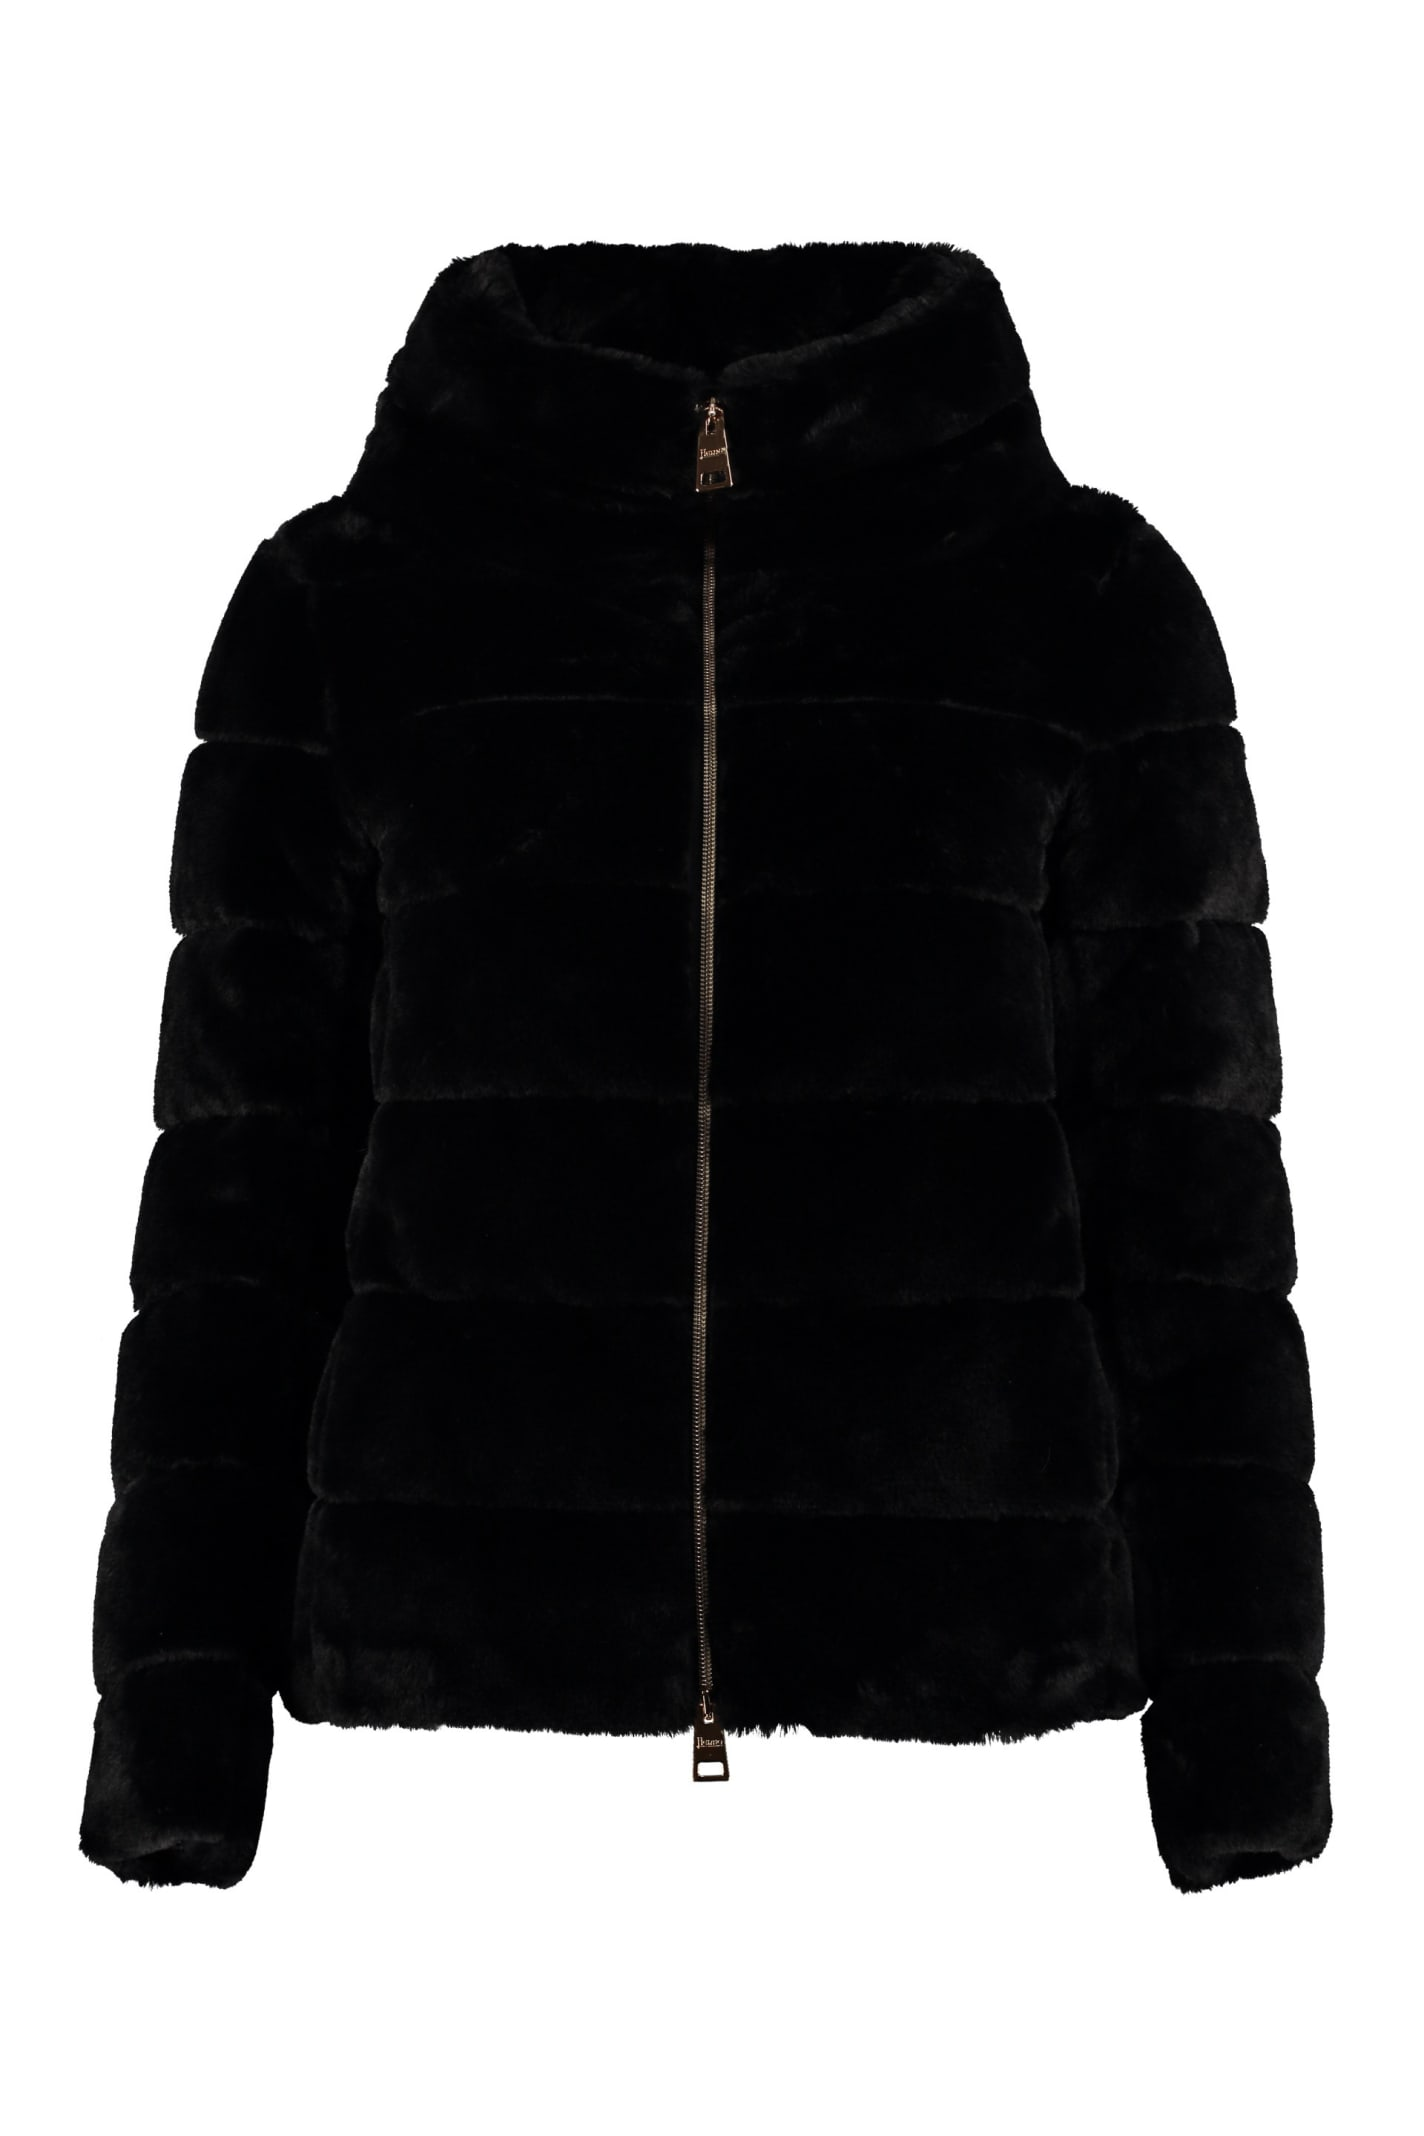 Herno Faux Fur Jacket